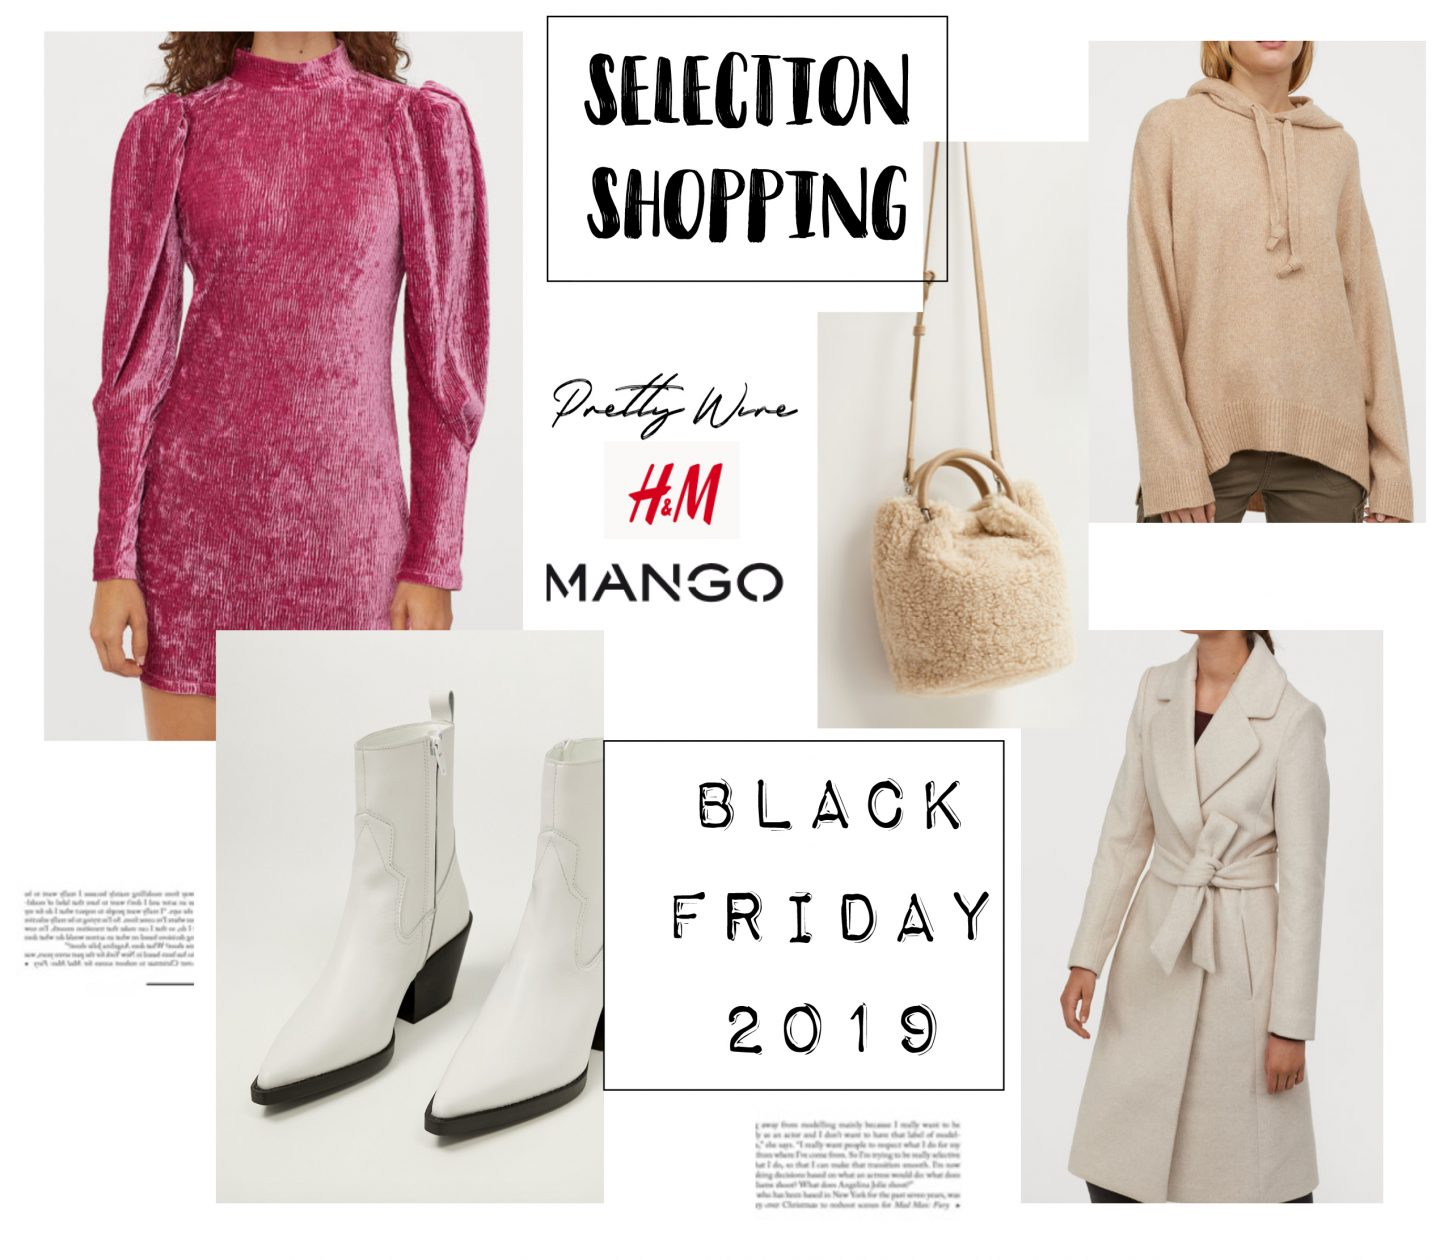 SÉLÉCTION SHOPPING – BLACK FRIDAY